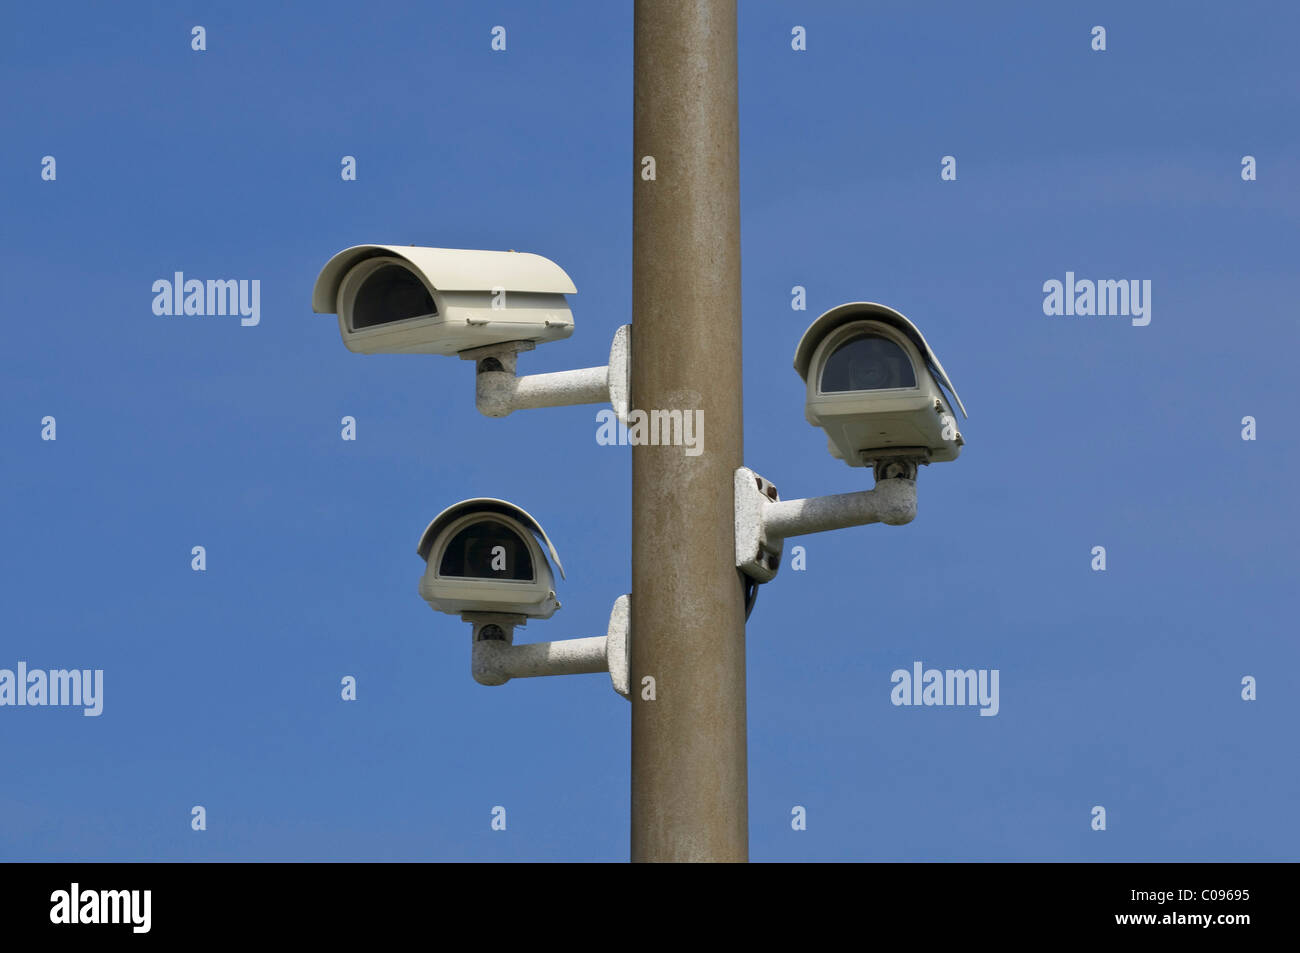 Three surveillance cameras on a post different viewing directions, street surveillance - Stock Image